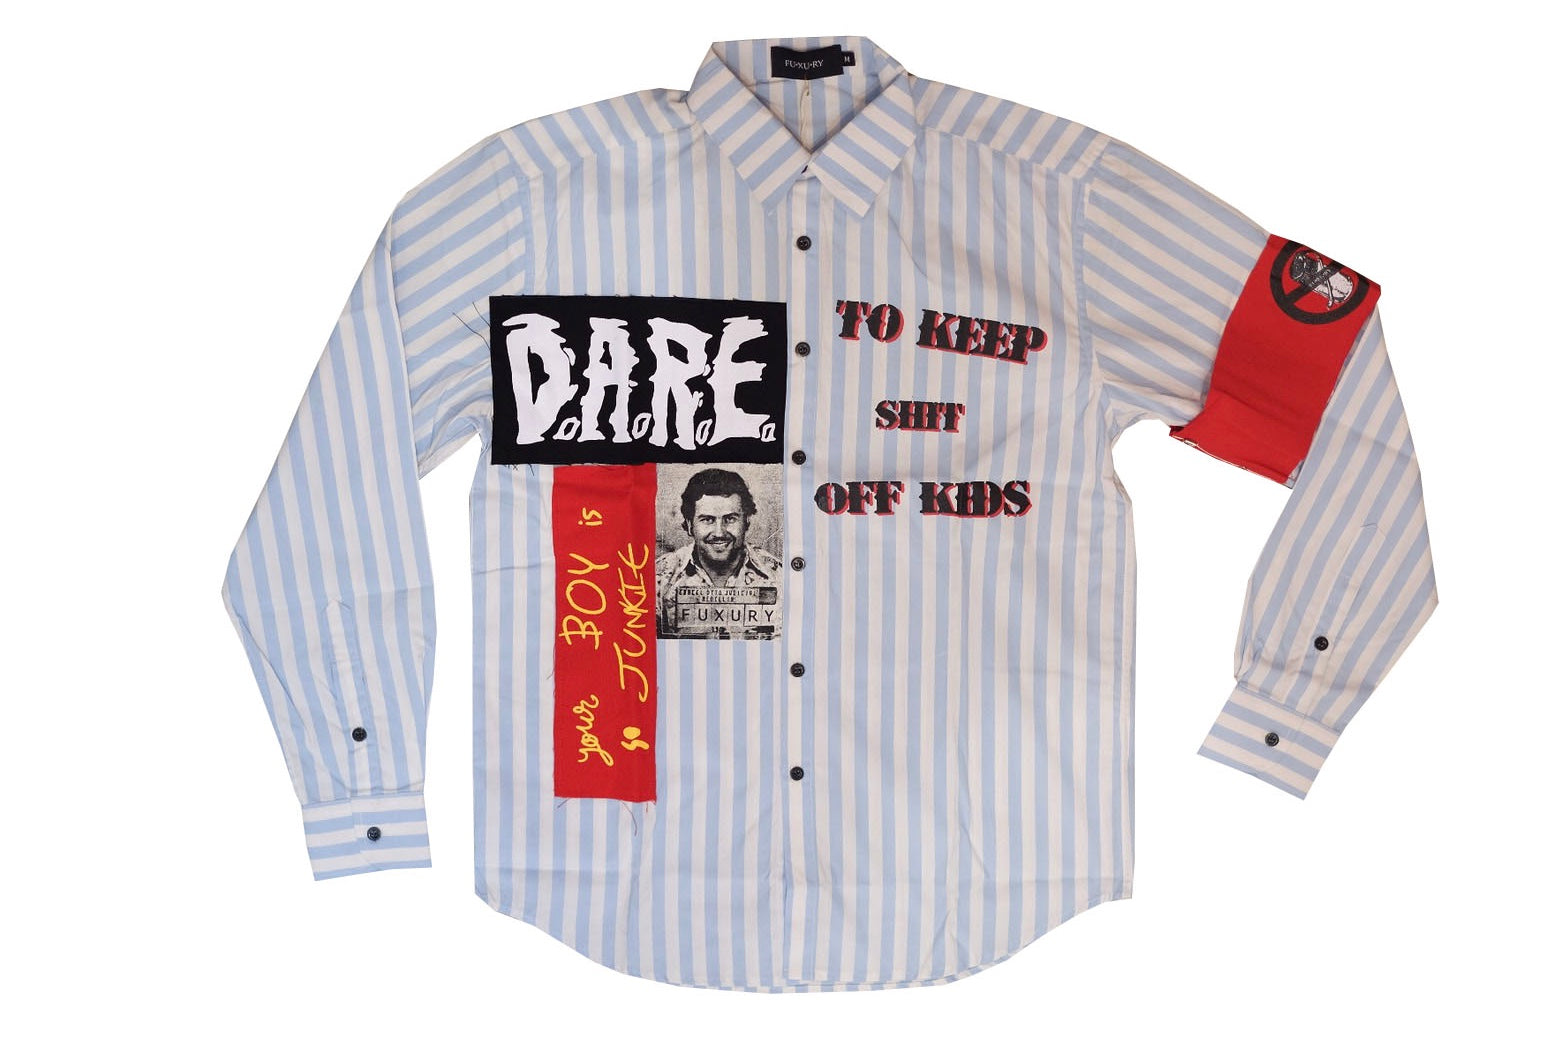 D.A.R.E (drugs are really expensive) PATCH BLUE SHIRT